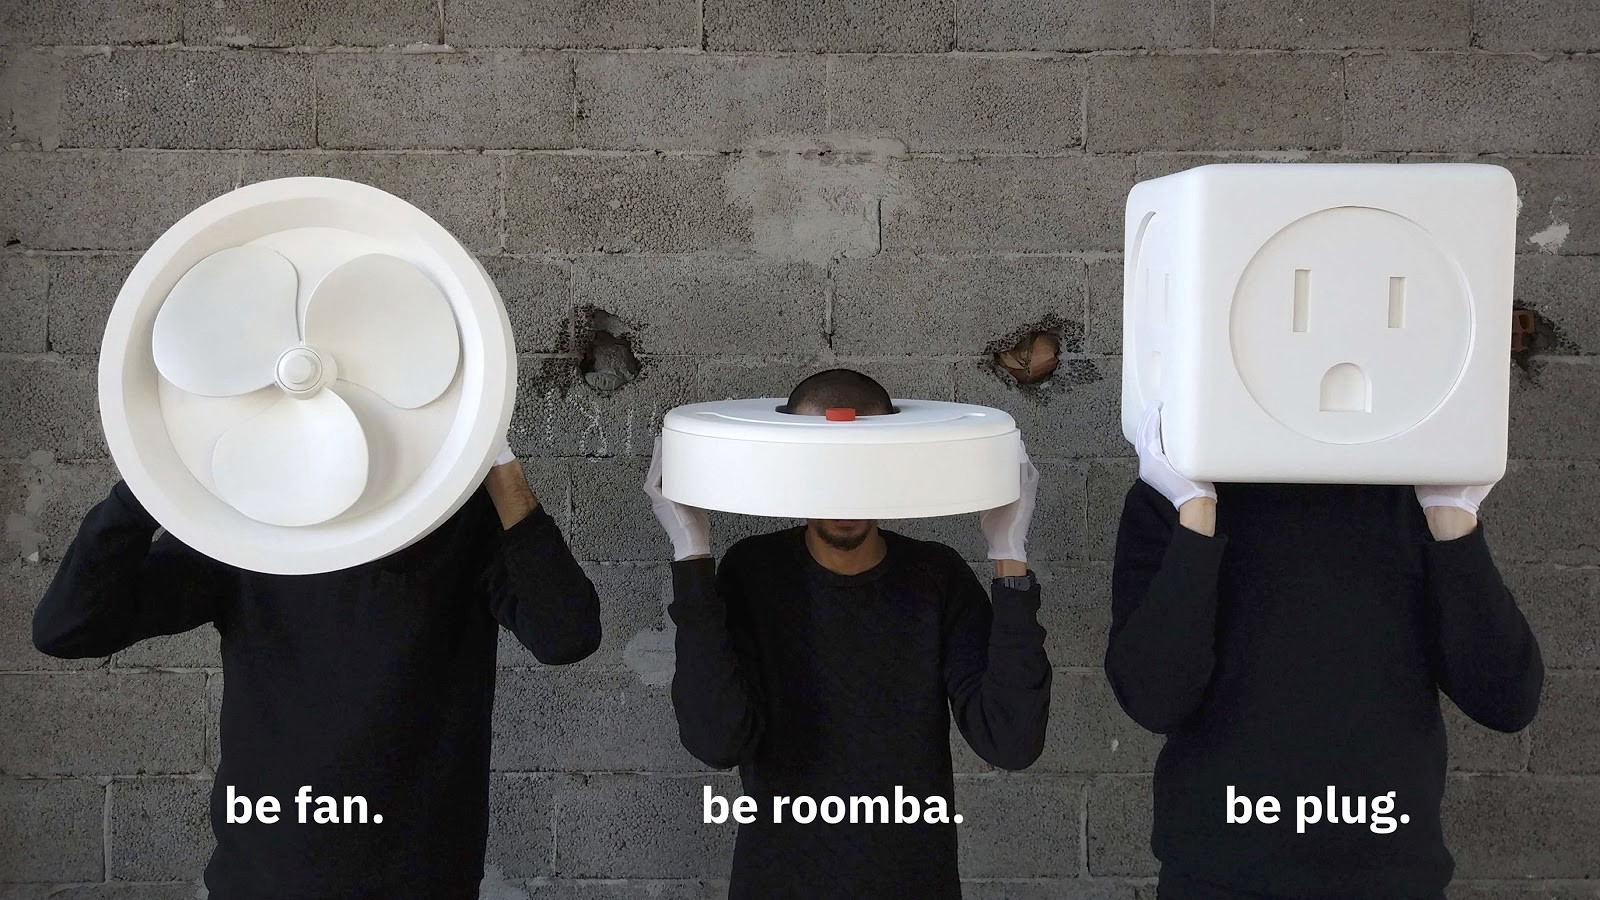 Three people with large household objects on their heads covering their eyes: a fan, a roomba, and a plug.